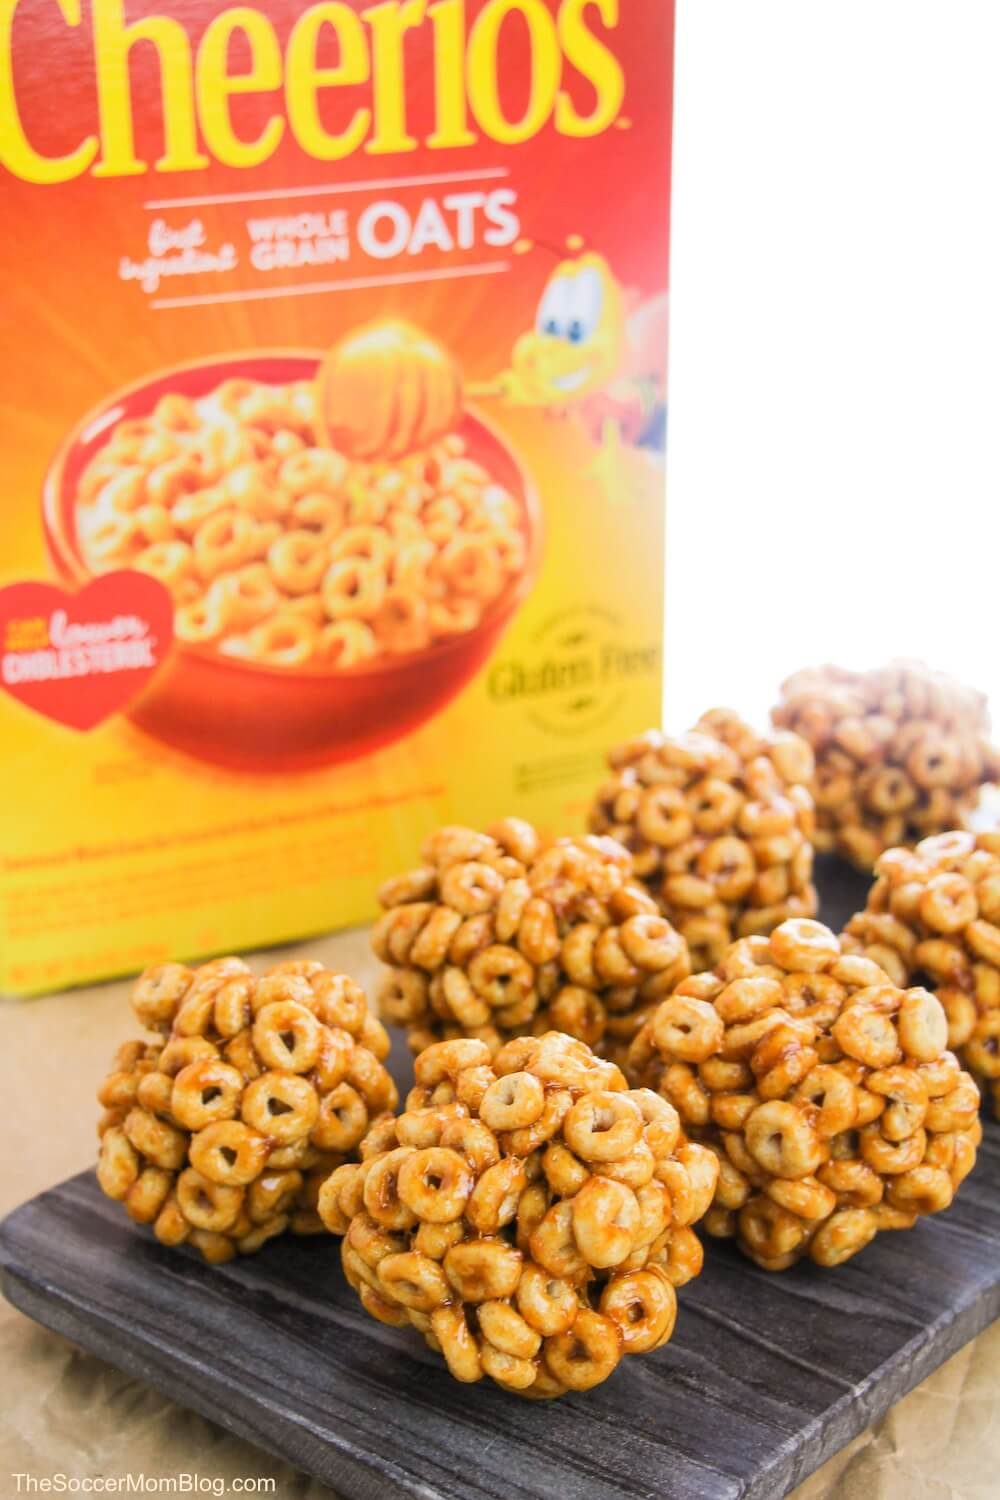 Cheerio balls with Cheerios box in background